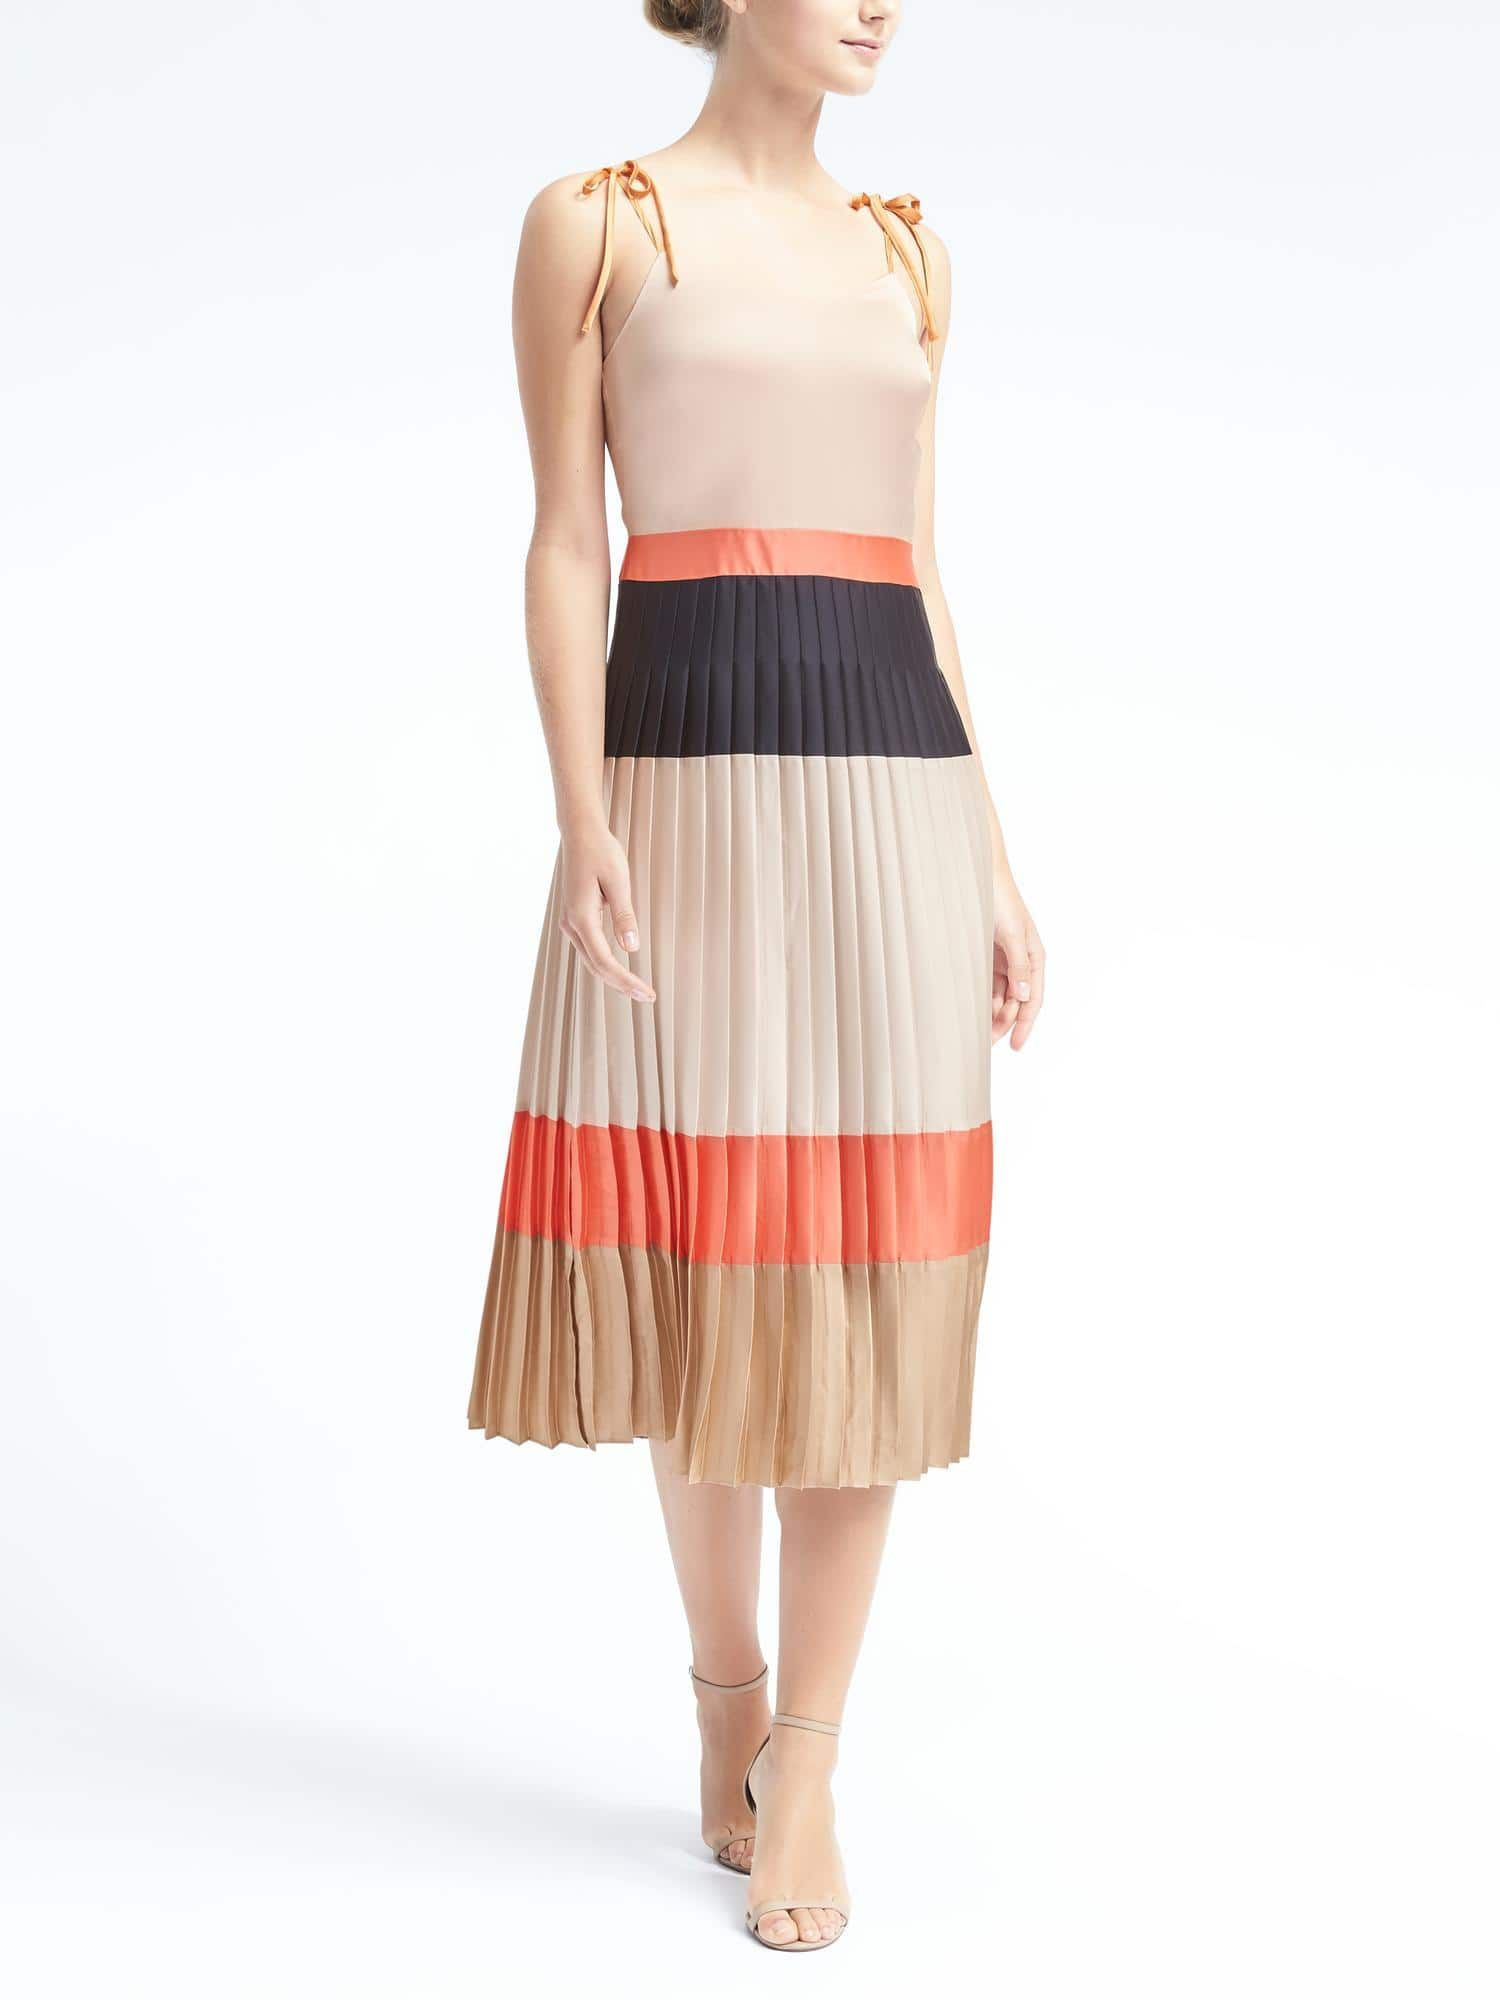 Pin by Rebecca Everett on Everyday Style | Pinterest | Pleated midi ...